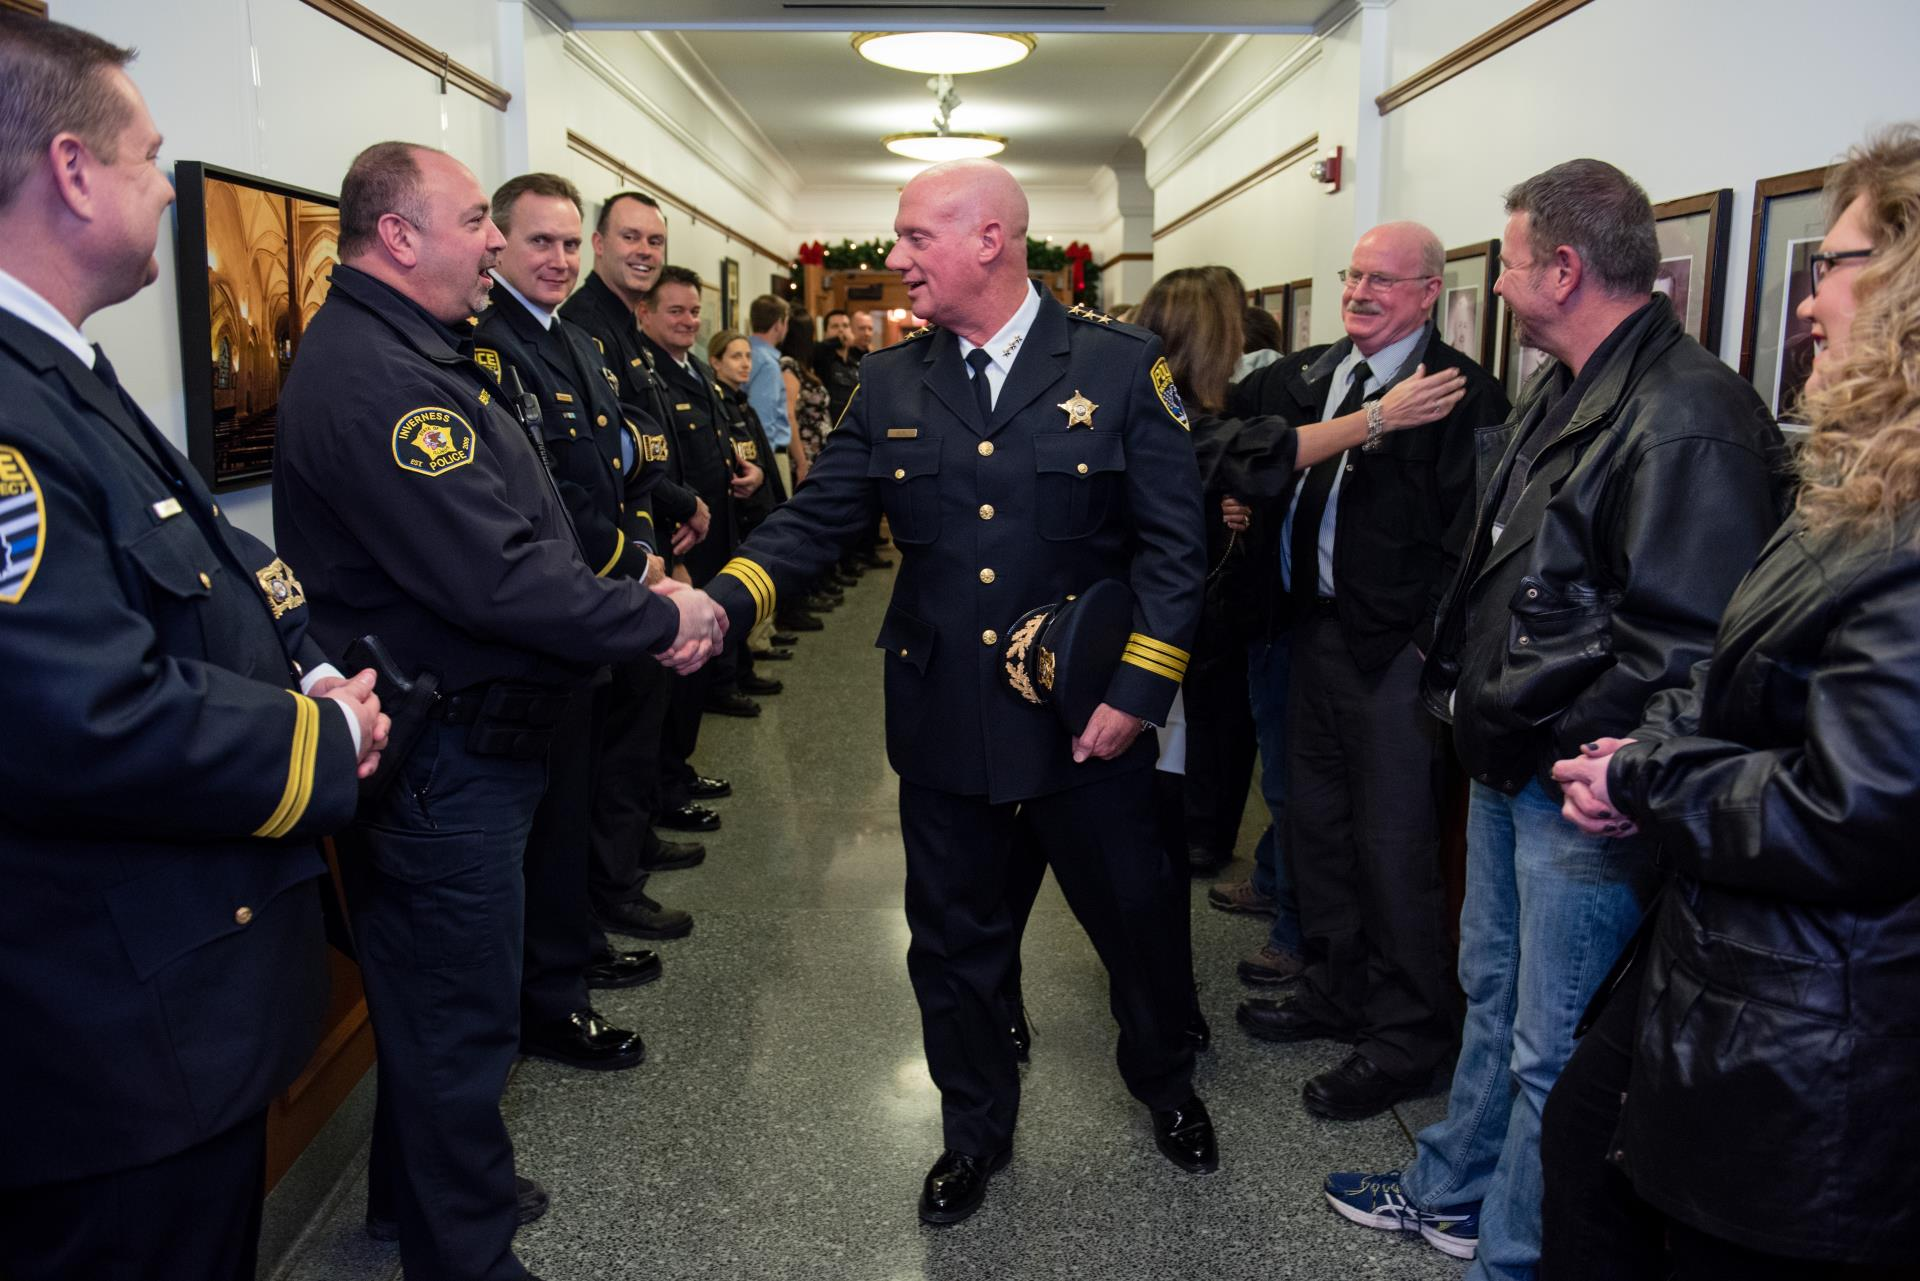 Chief Koziol Swearing-In Ceremony Final-4275